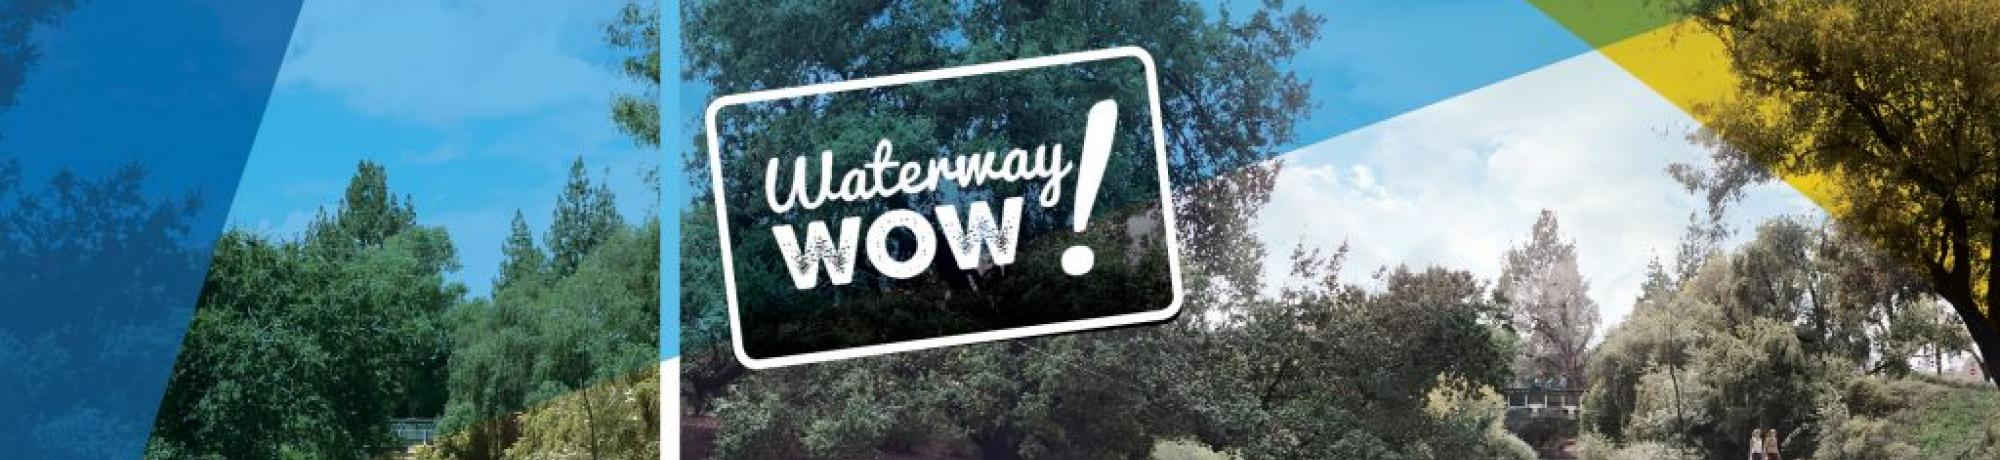 Image of a before and after image of the Arboretum Waterway.